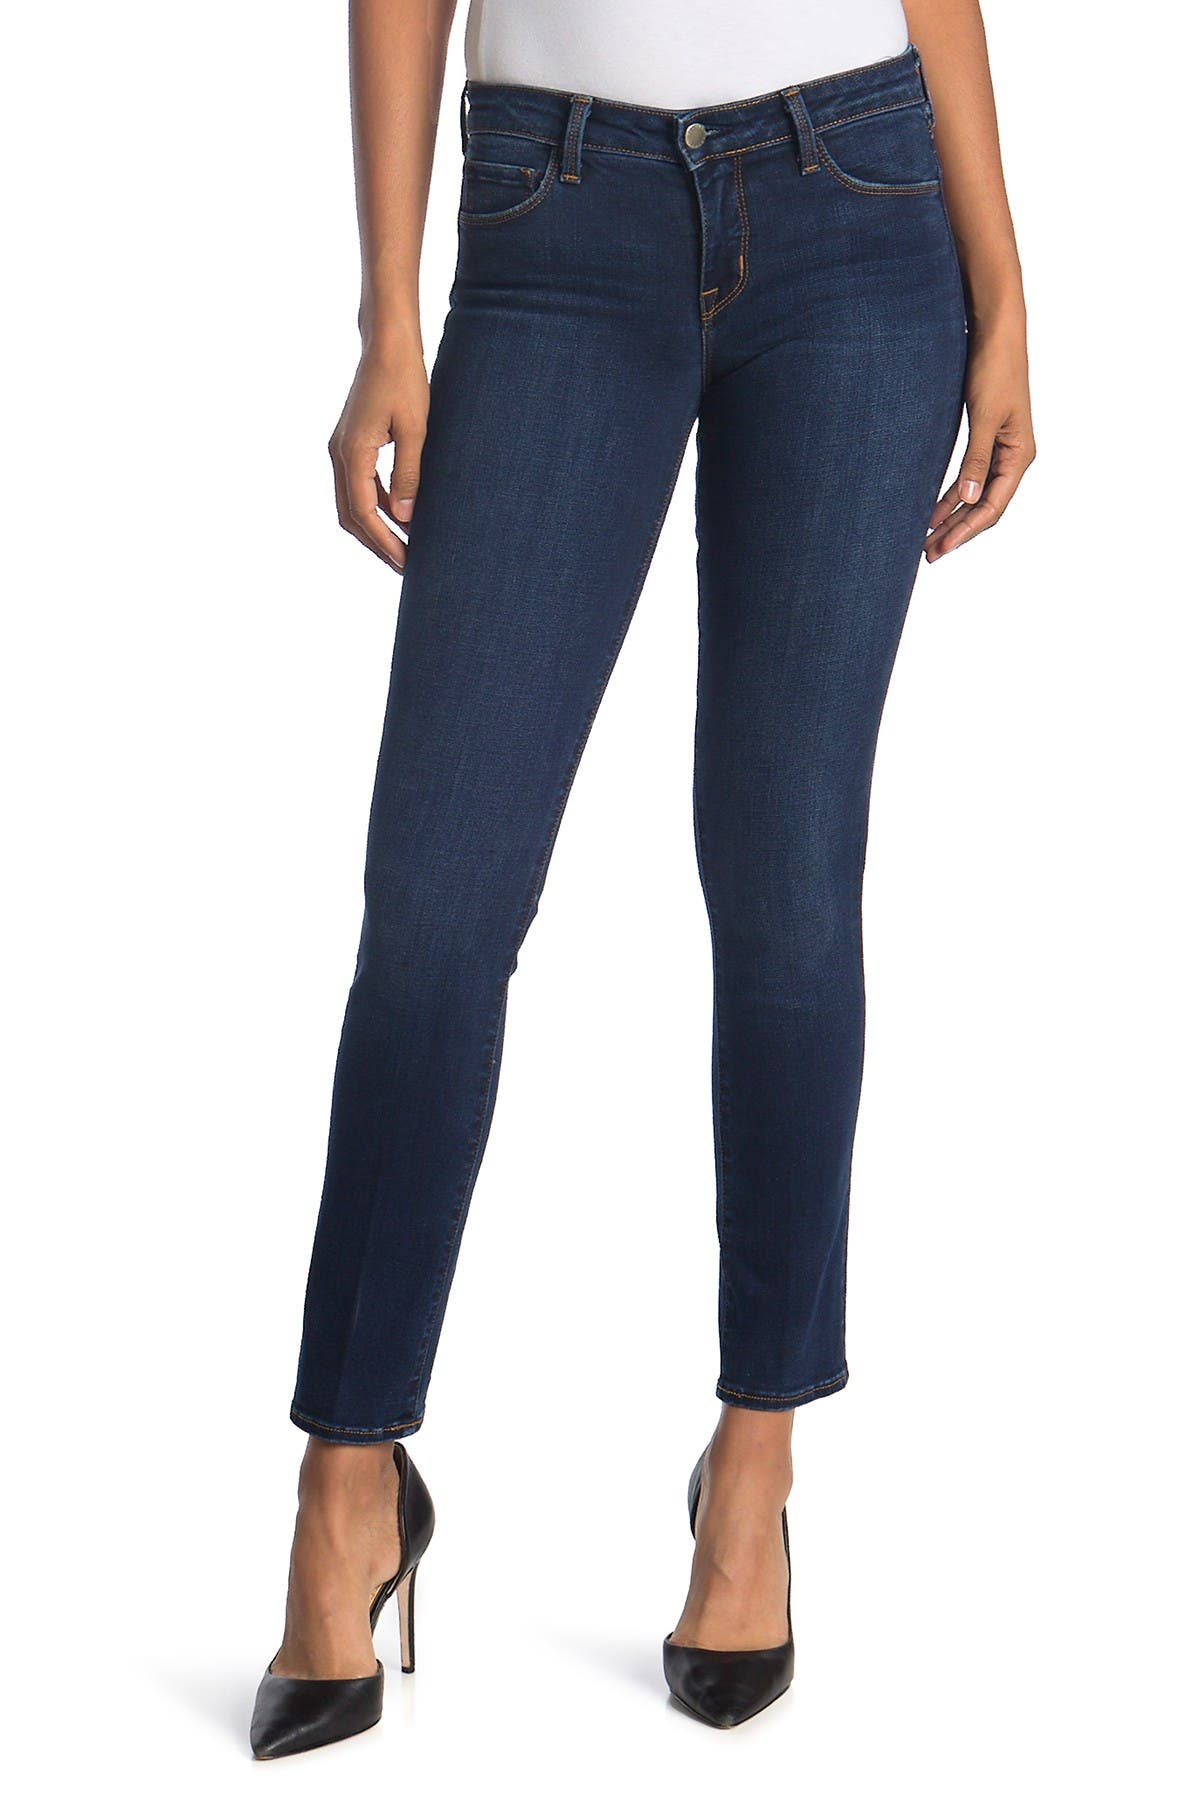 Image of L'AGENCE Coco Midrise Straight Leg Jeans